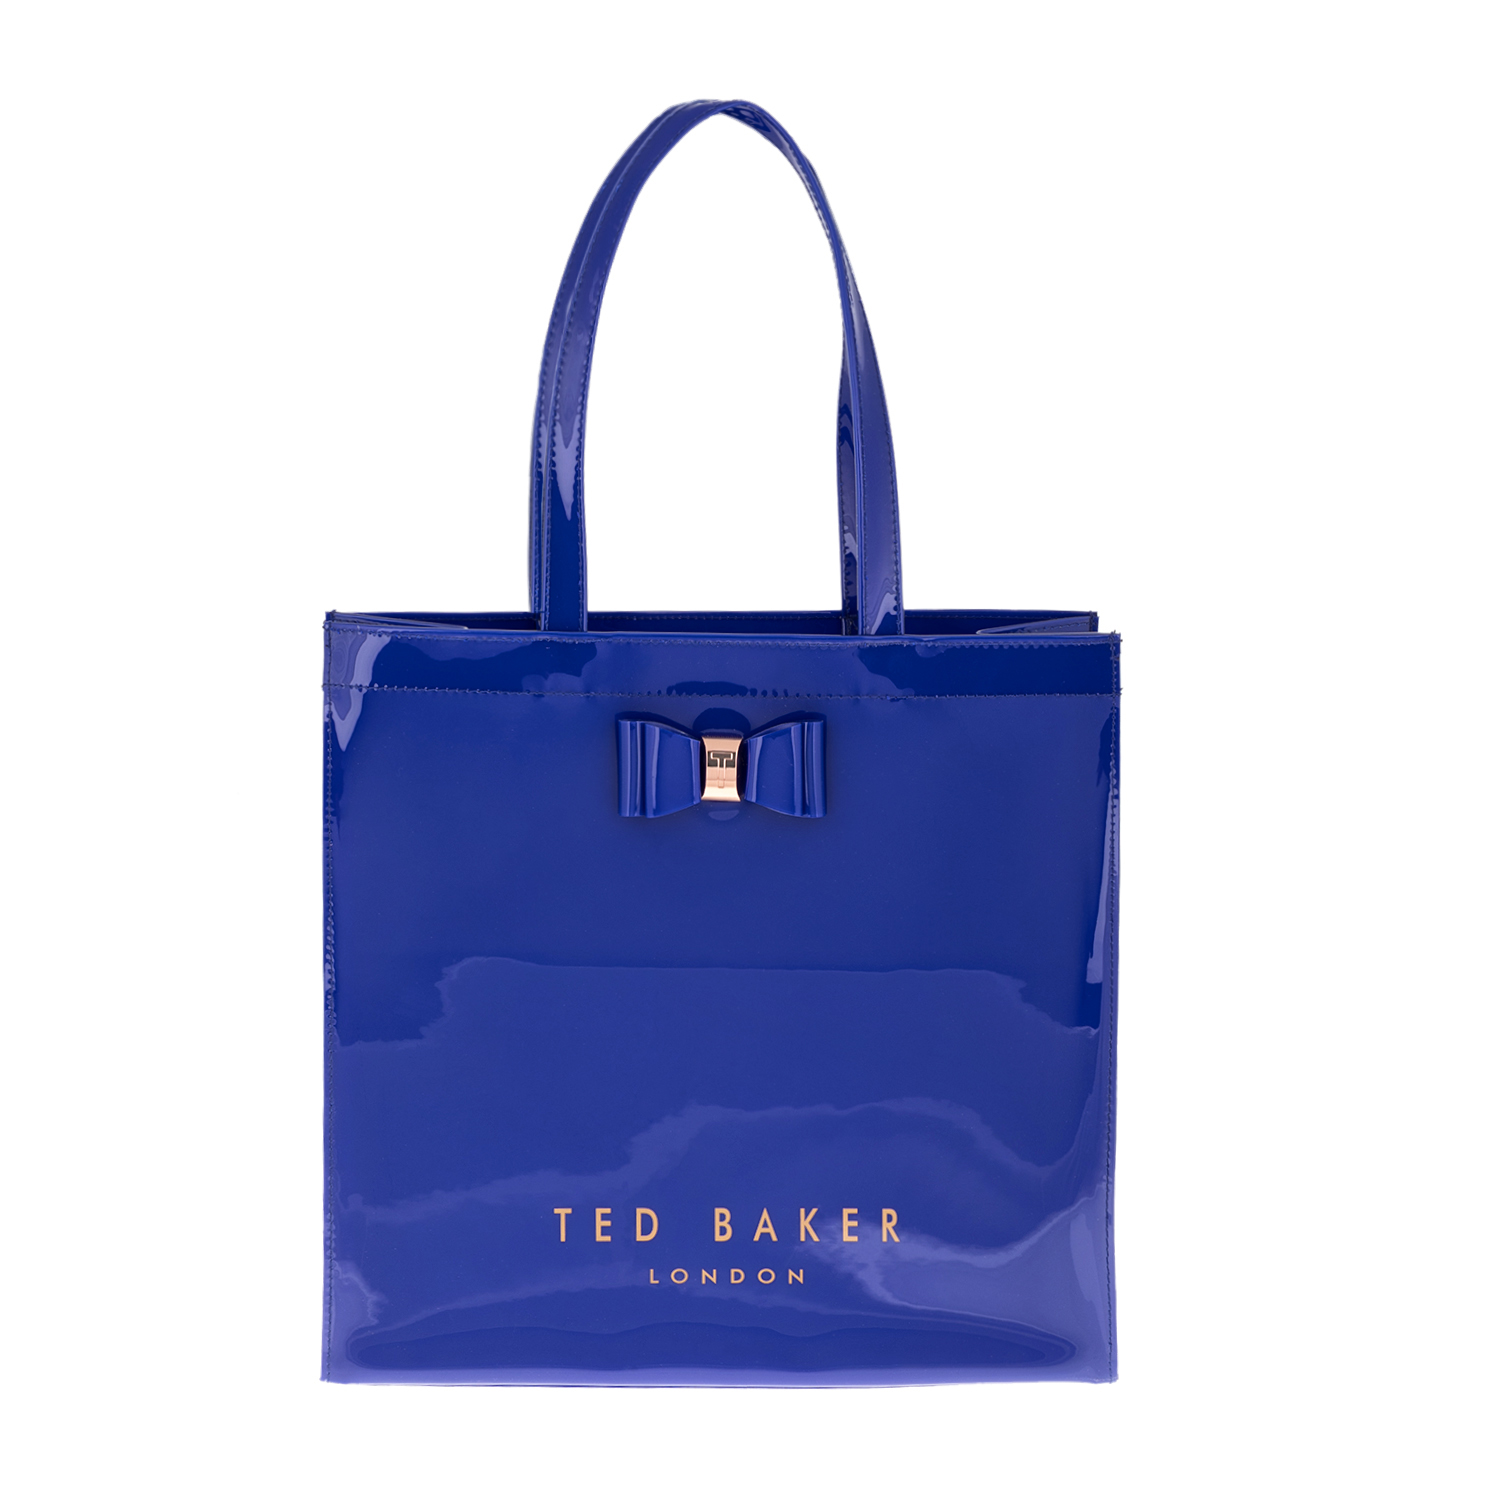 TED BAKER – Γυναικεία τσάντα BETHCON TED BAKER μπλε 1567855.0-0033